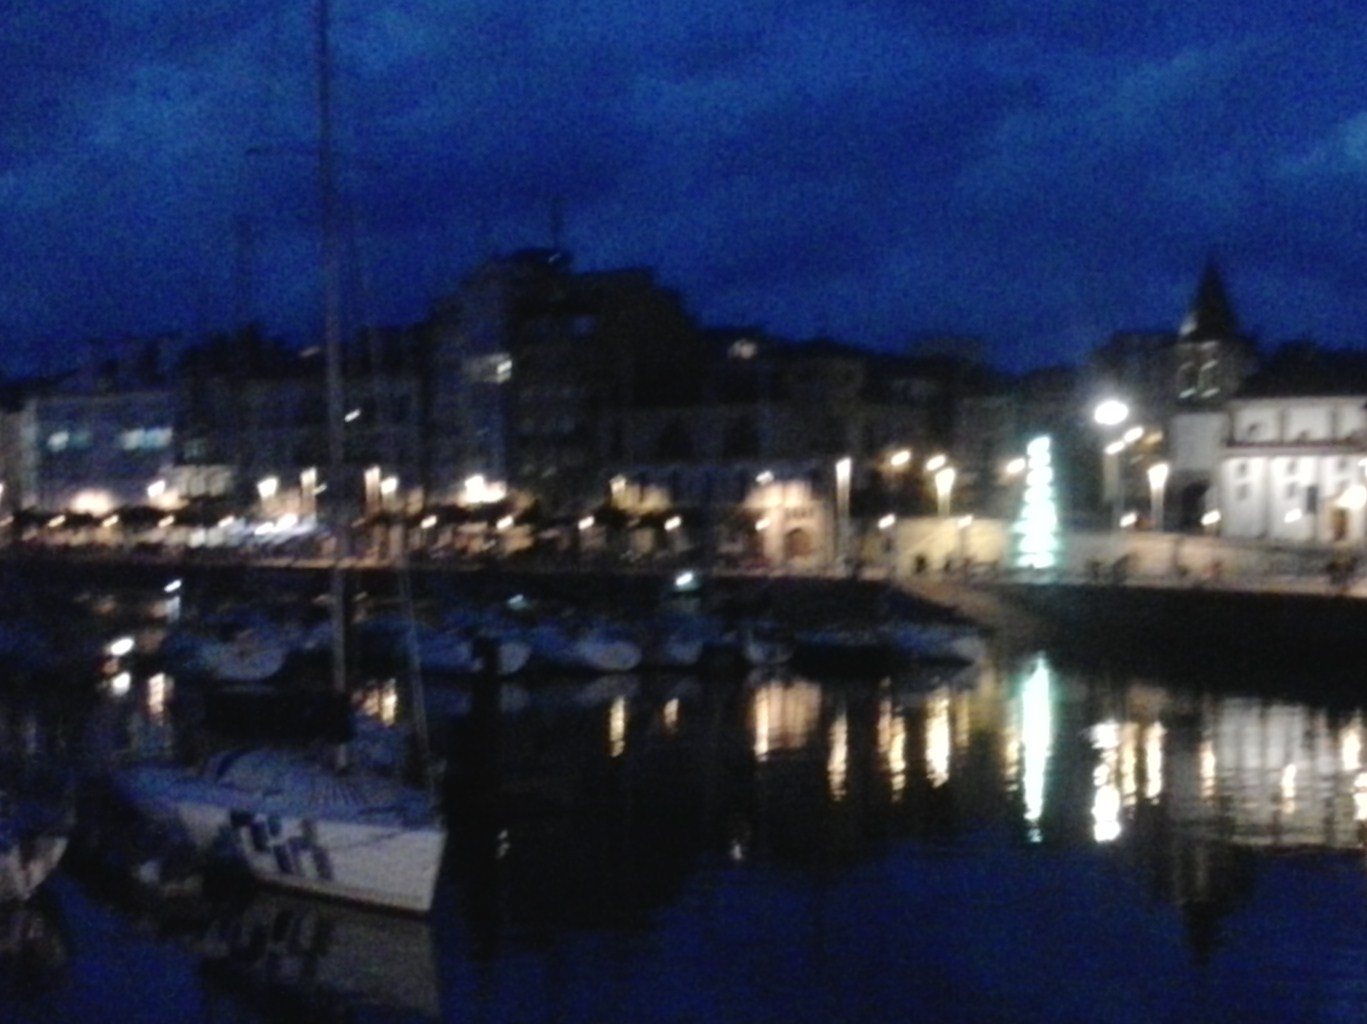 Gijón: Cimavilla at night. The pintos aren't quite Bilbao, Logroño, or Pamplona, but the sidra is better.